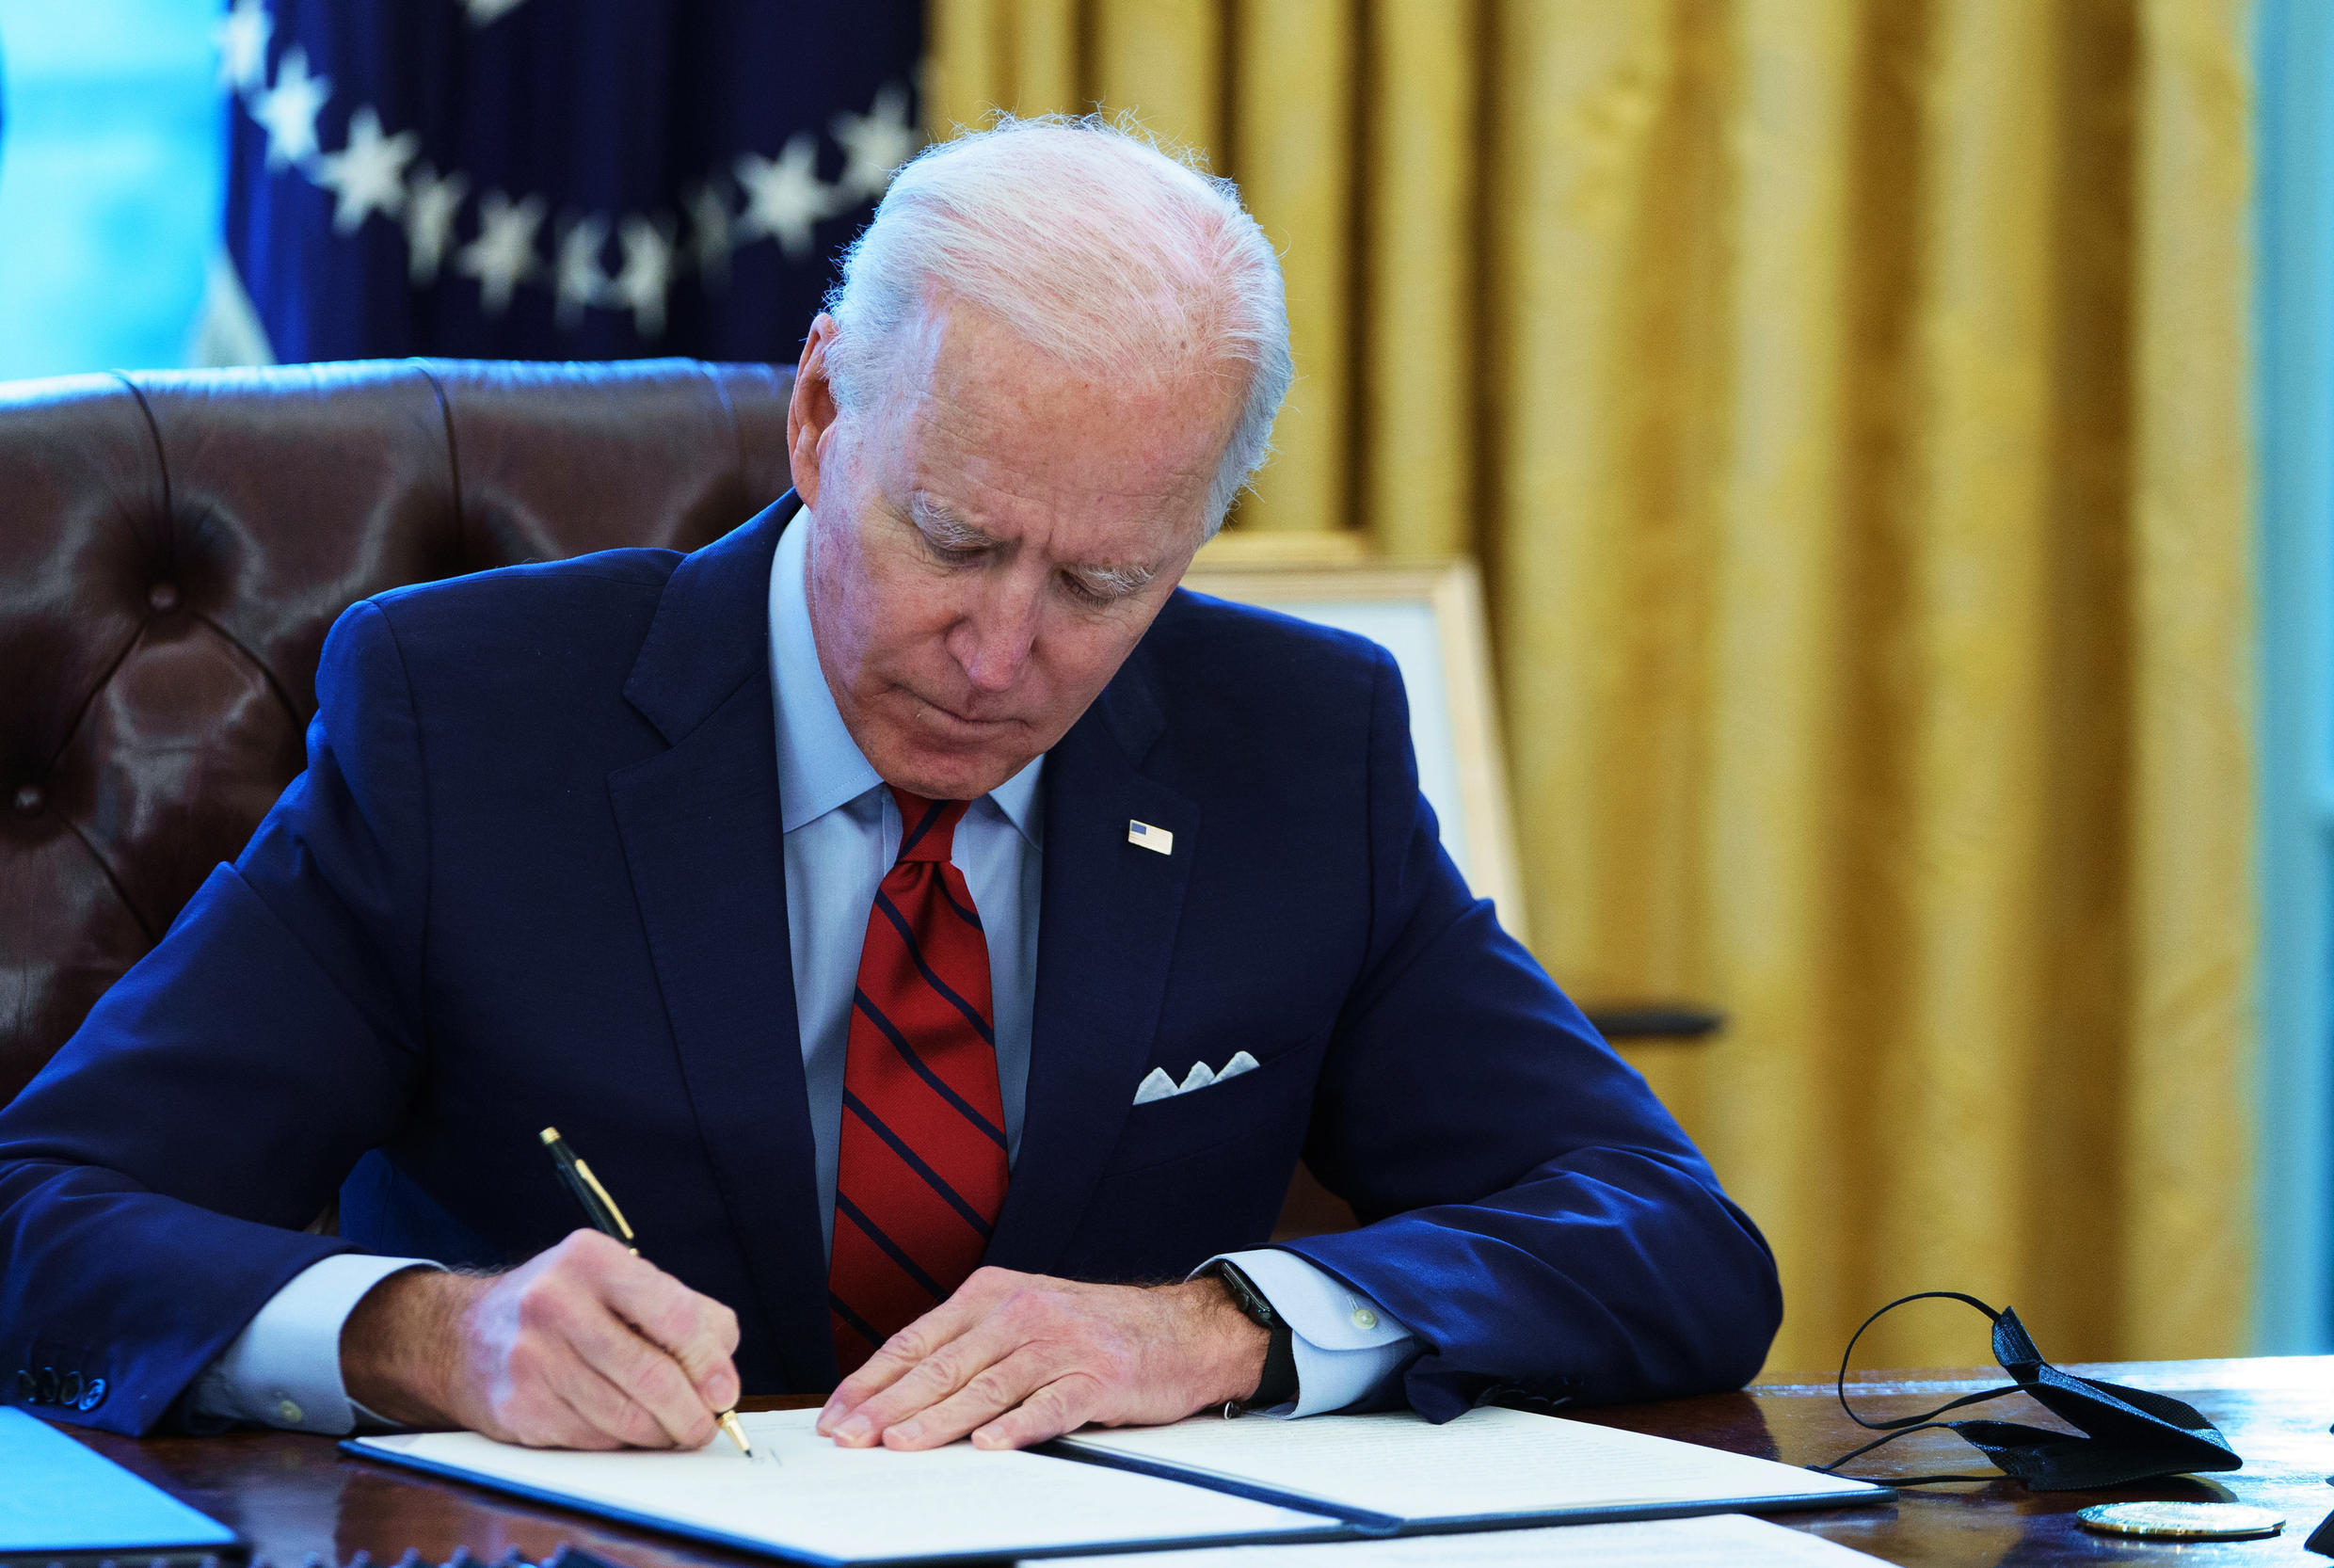 FILE - US President Joe Biden, pictured here in January 2021, will sign a series of executive orders aimed at reviewing the US immigration process, marking a return to a more inclusive policy.